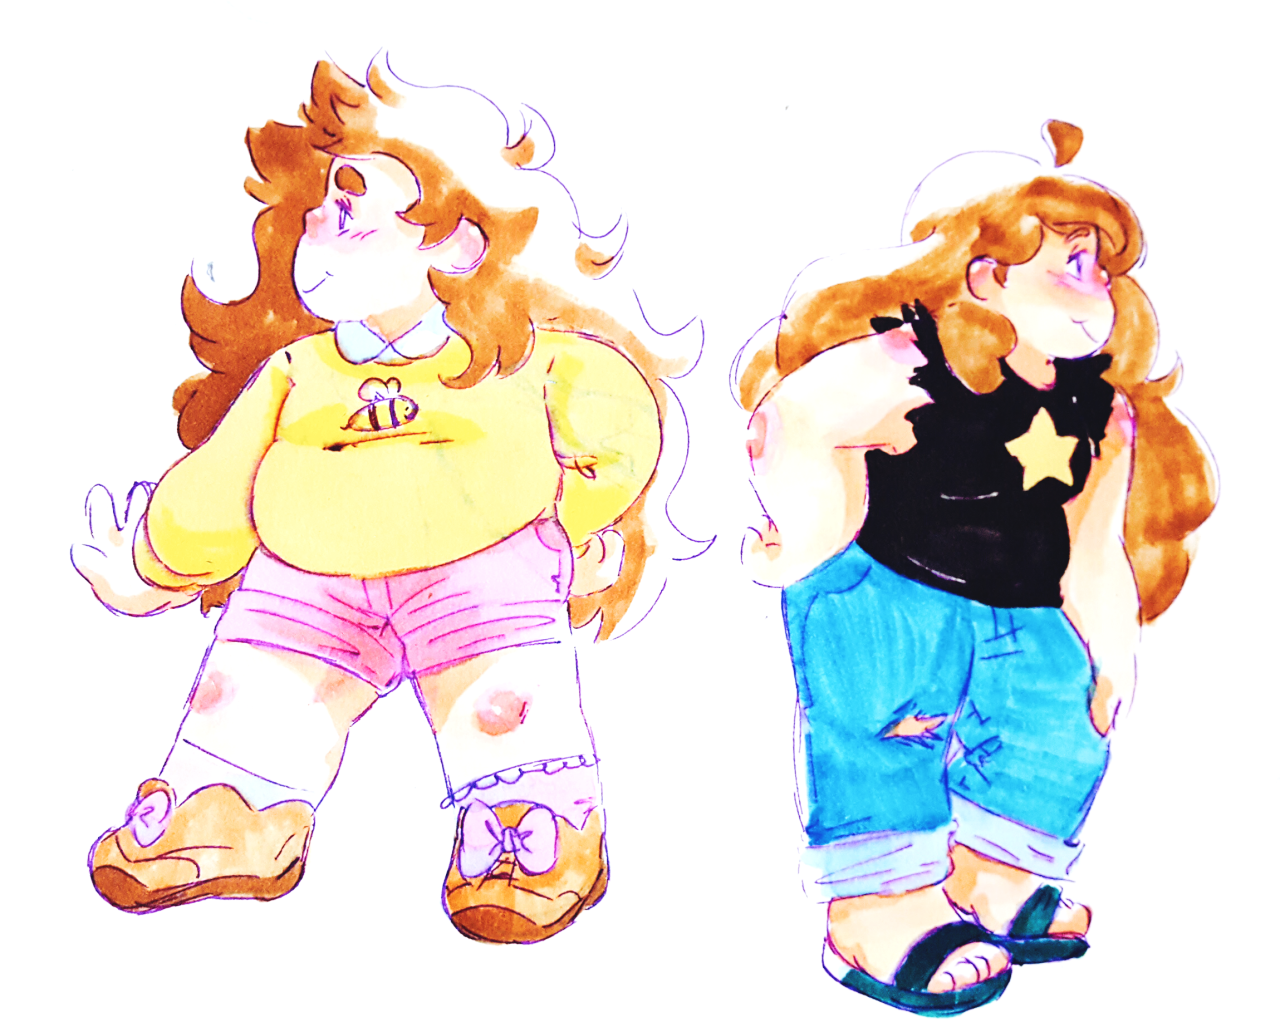 bee and greg tryin out each other's styles